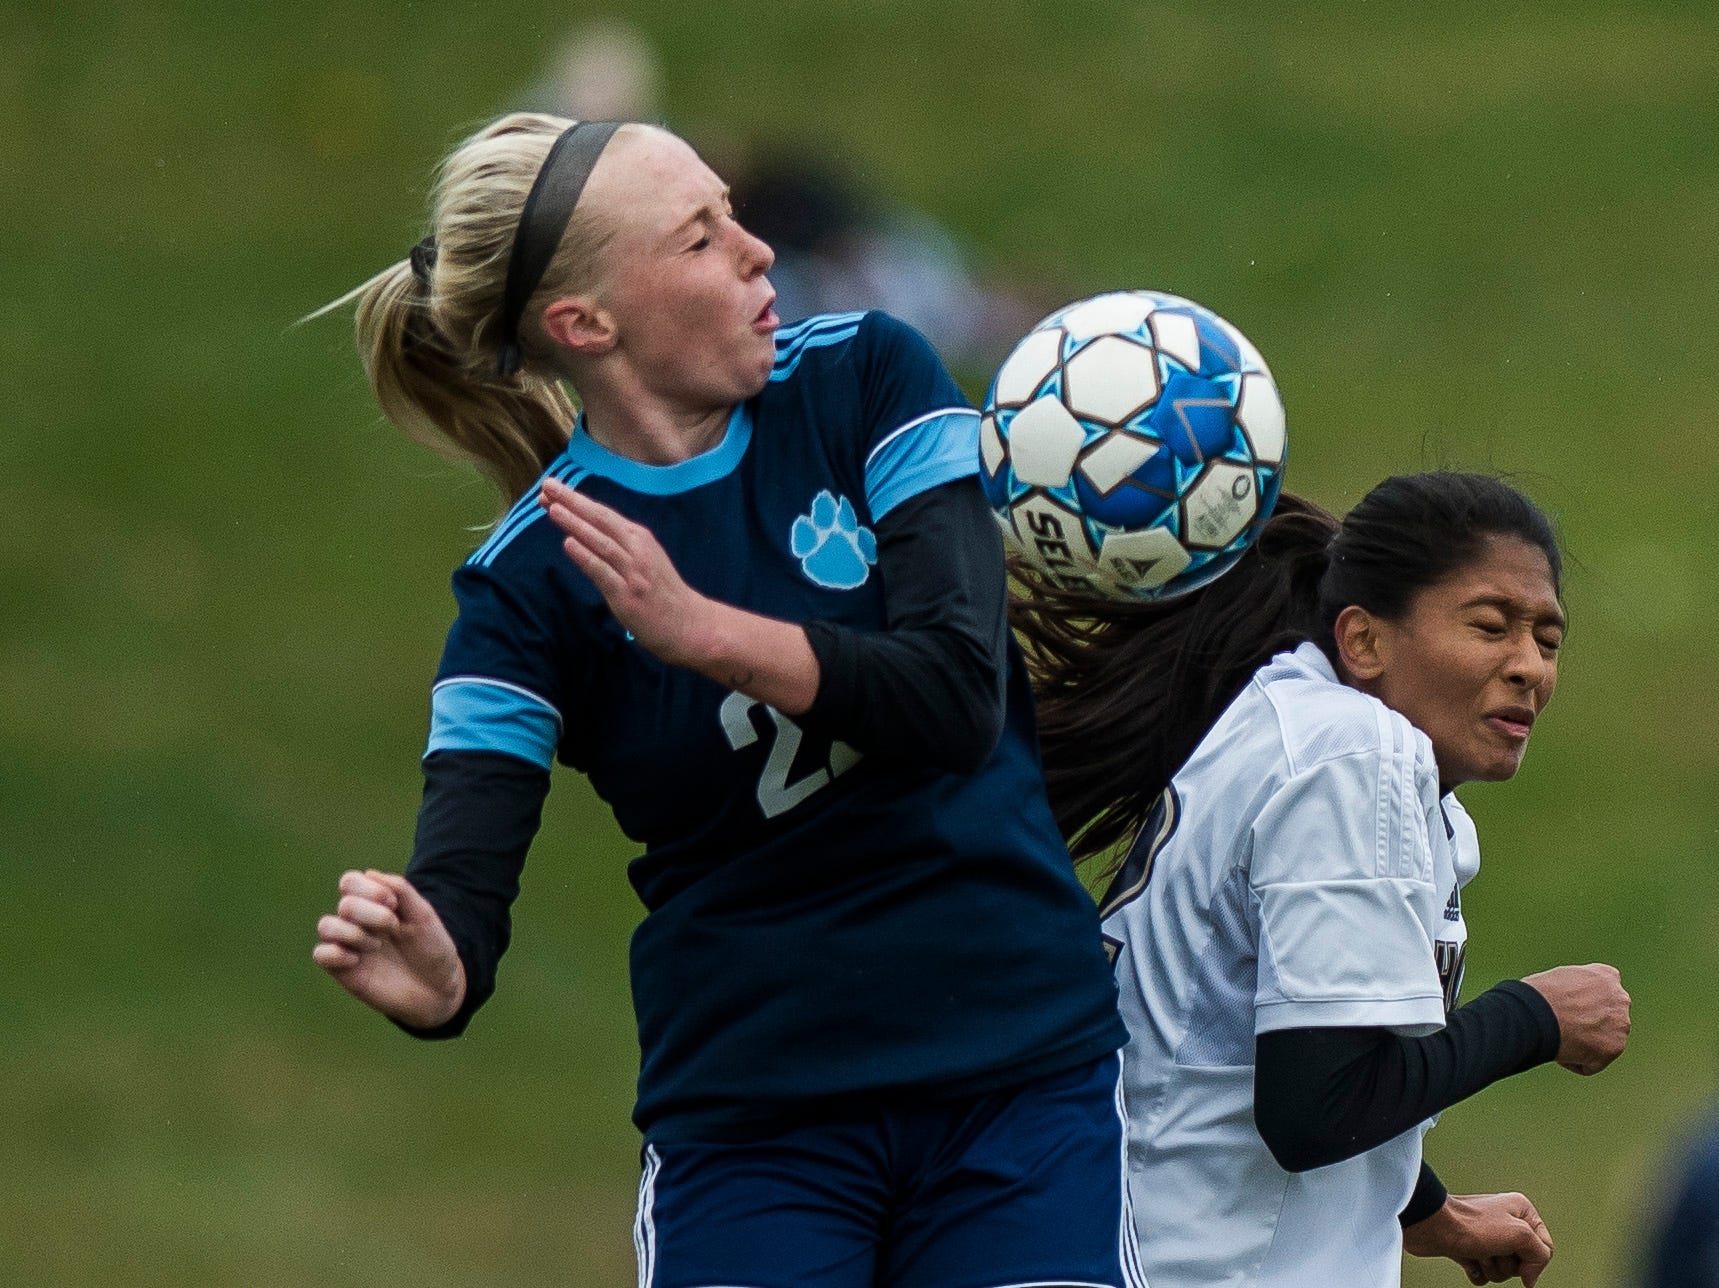 MMU #22 Willa Clark and Essex #12 Souma Mitra collide during their quarter-final game in Jericho on Saturday, Oct. 27, 2018, that went into double overtime and shootout. Essex took the penalty kick contest to win, 4-1.